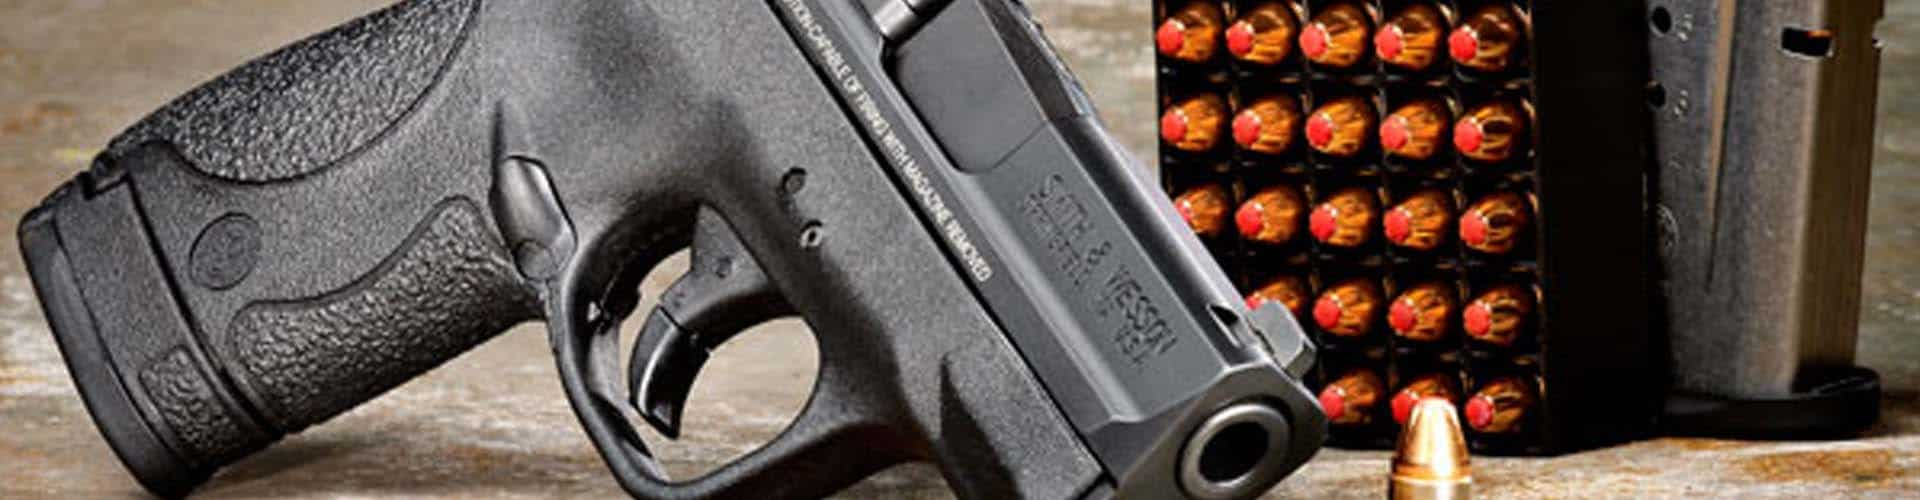 Smith & Wesson M&P Shield vs Springfield XD-S